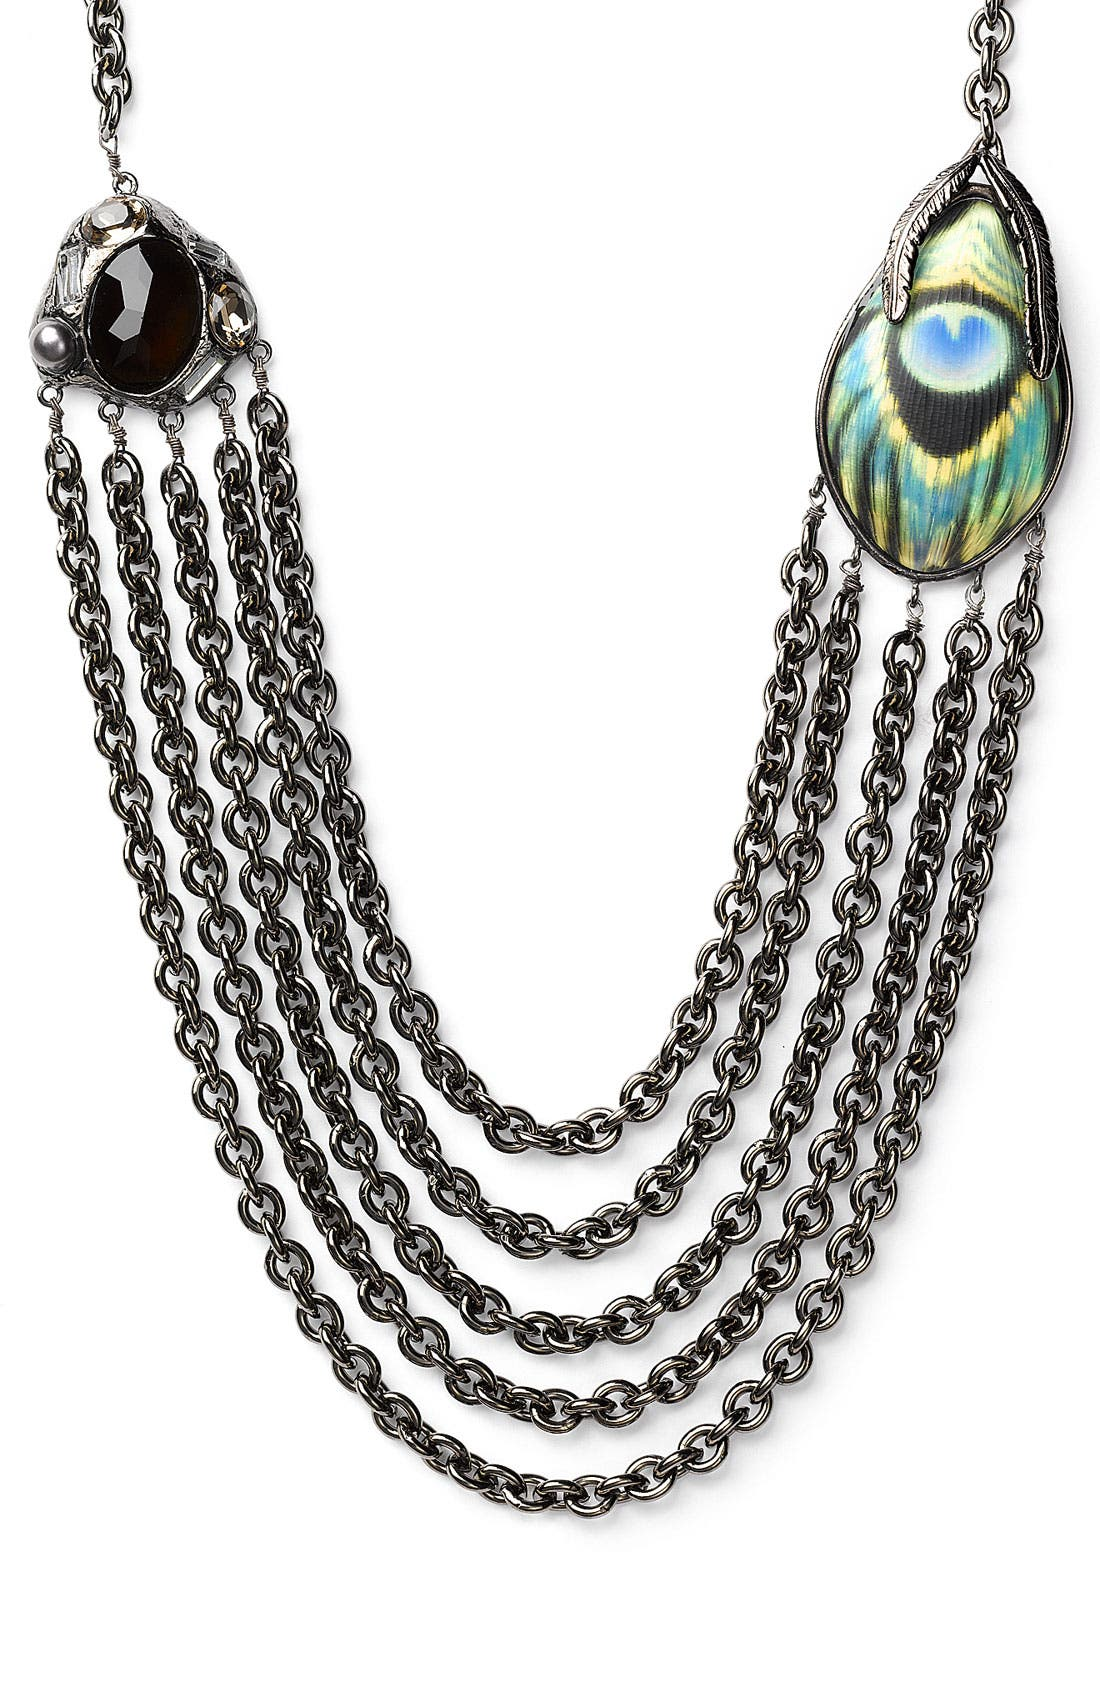 Alternate Image 1 Selected - Alexis Bittar 'Alexandria' Multistrand Necklace (Nordstrom Exclusive)